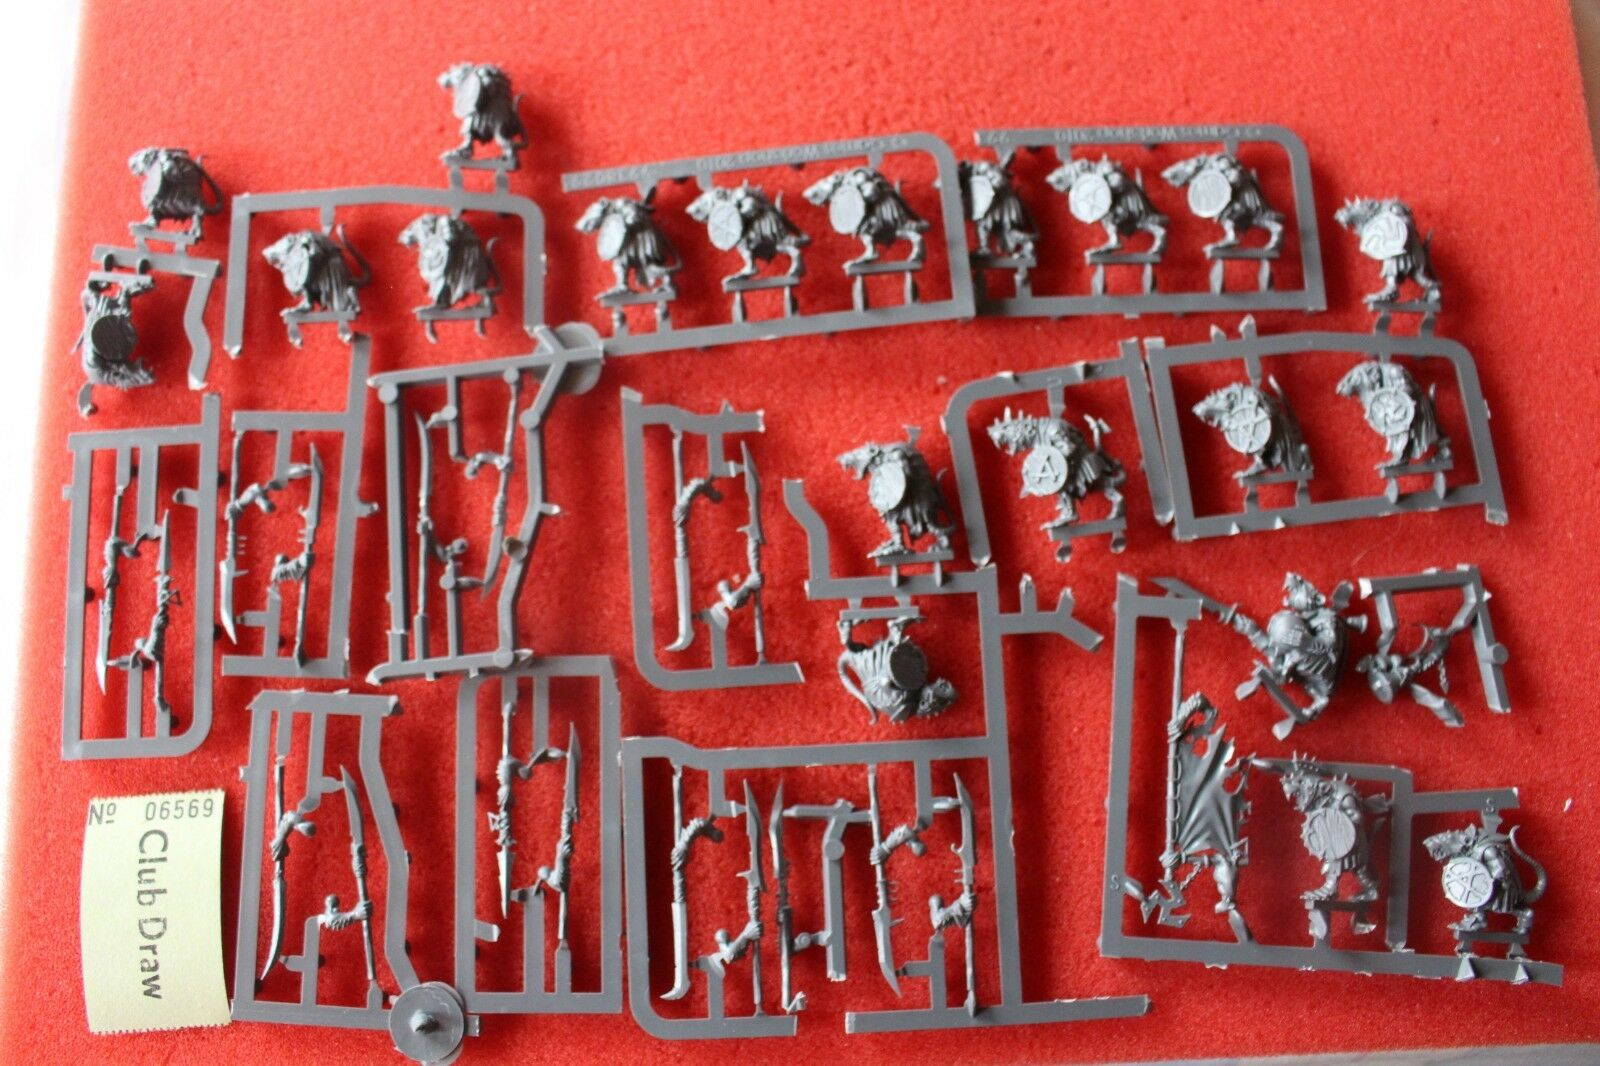 Games Workshop Warhammer Skaven Clan Rats Clanrats 20 Models Regiment New GW B2